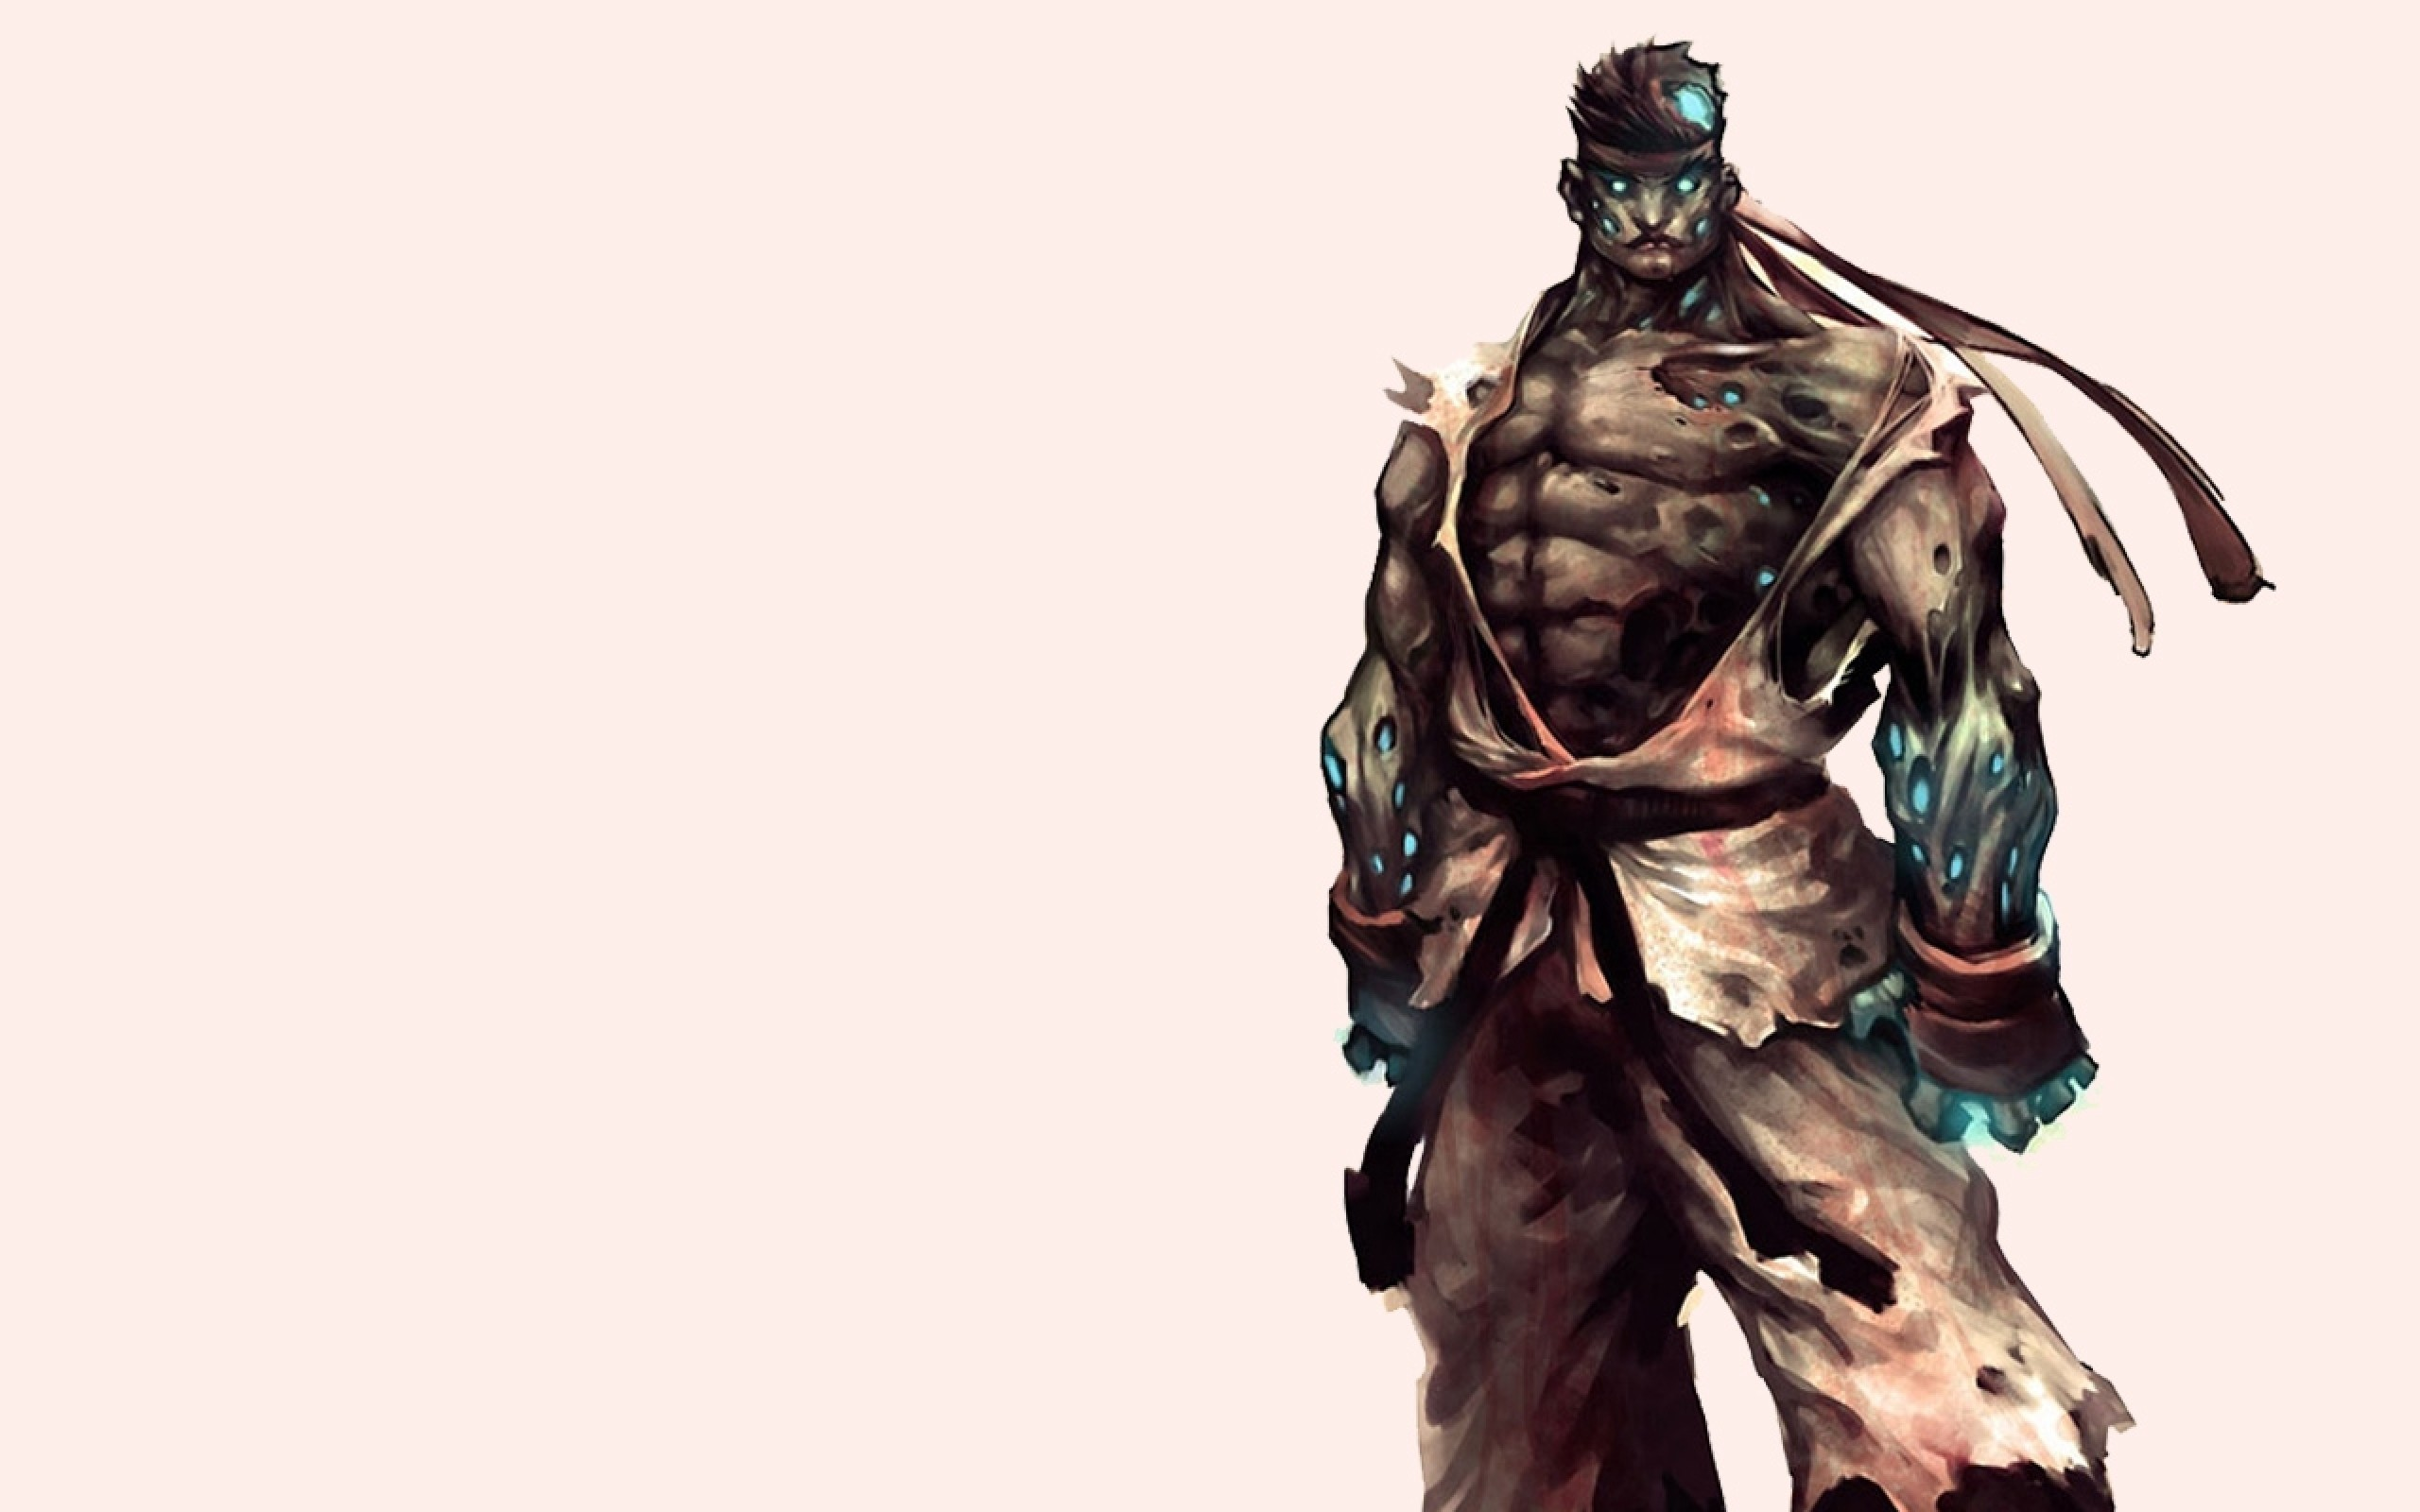 Zombie Street Fighter wallpapers | Zombie Street Fighter stock photos